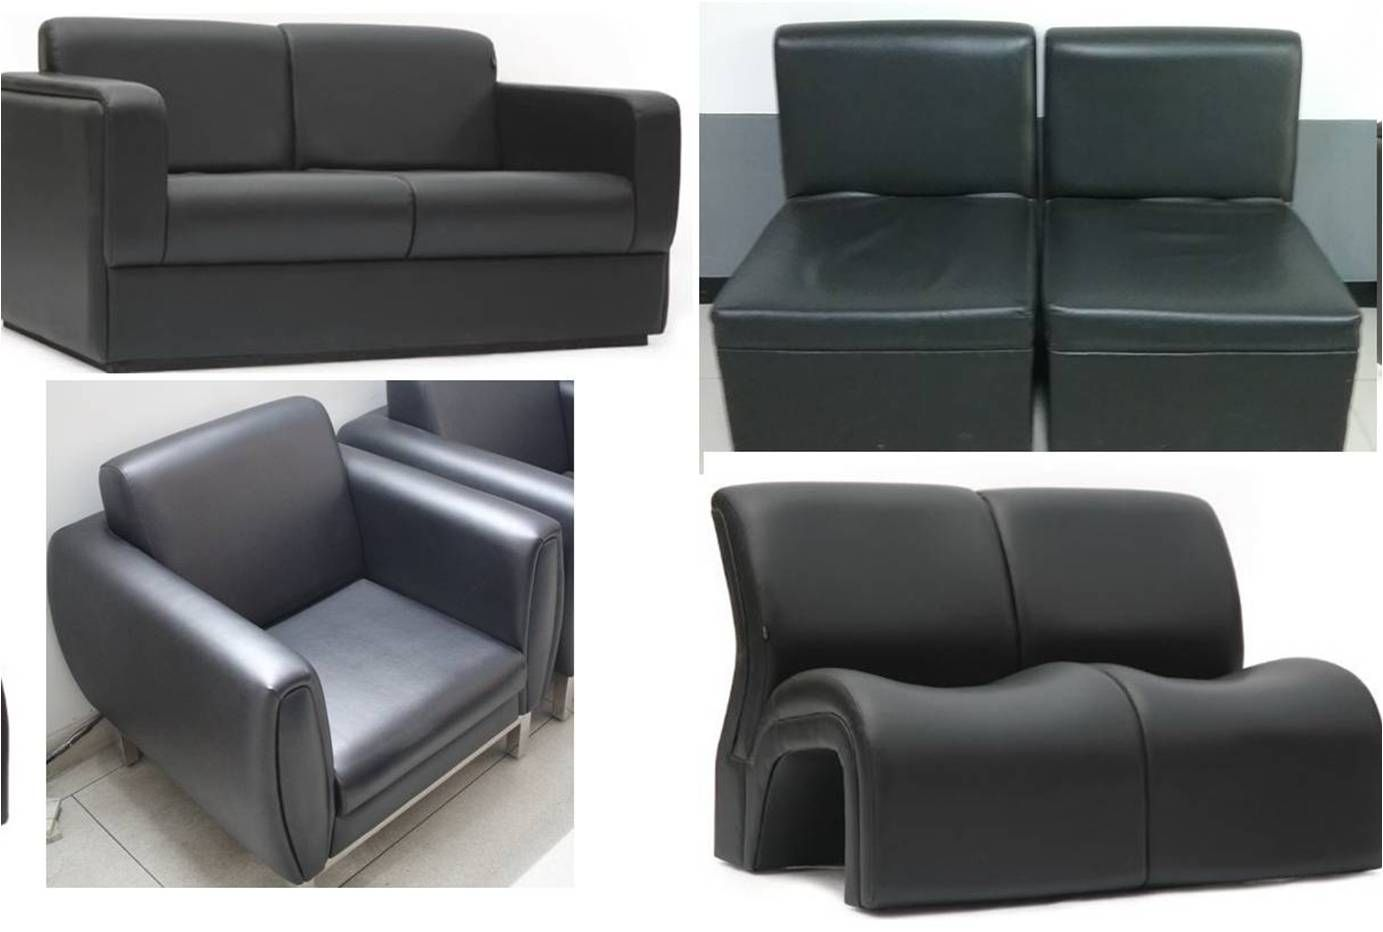 Office sofa Manufacturer and vendor OtobiHatil Material